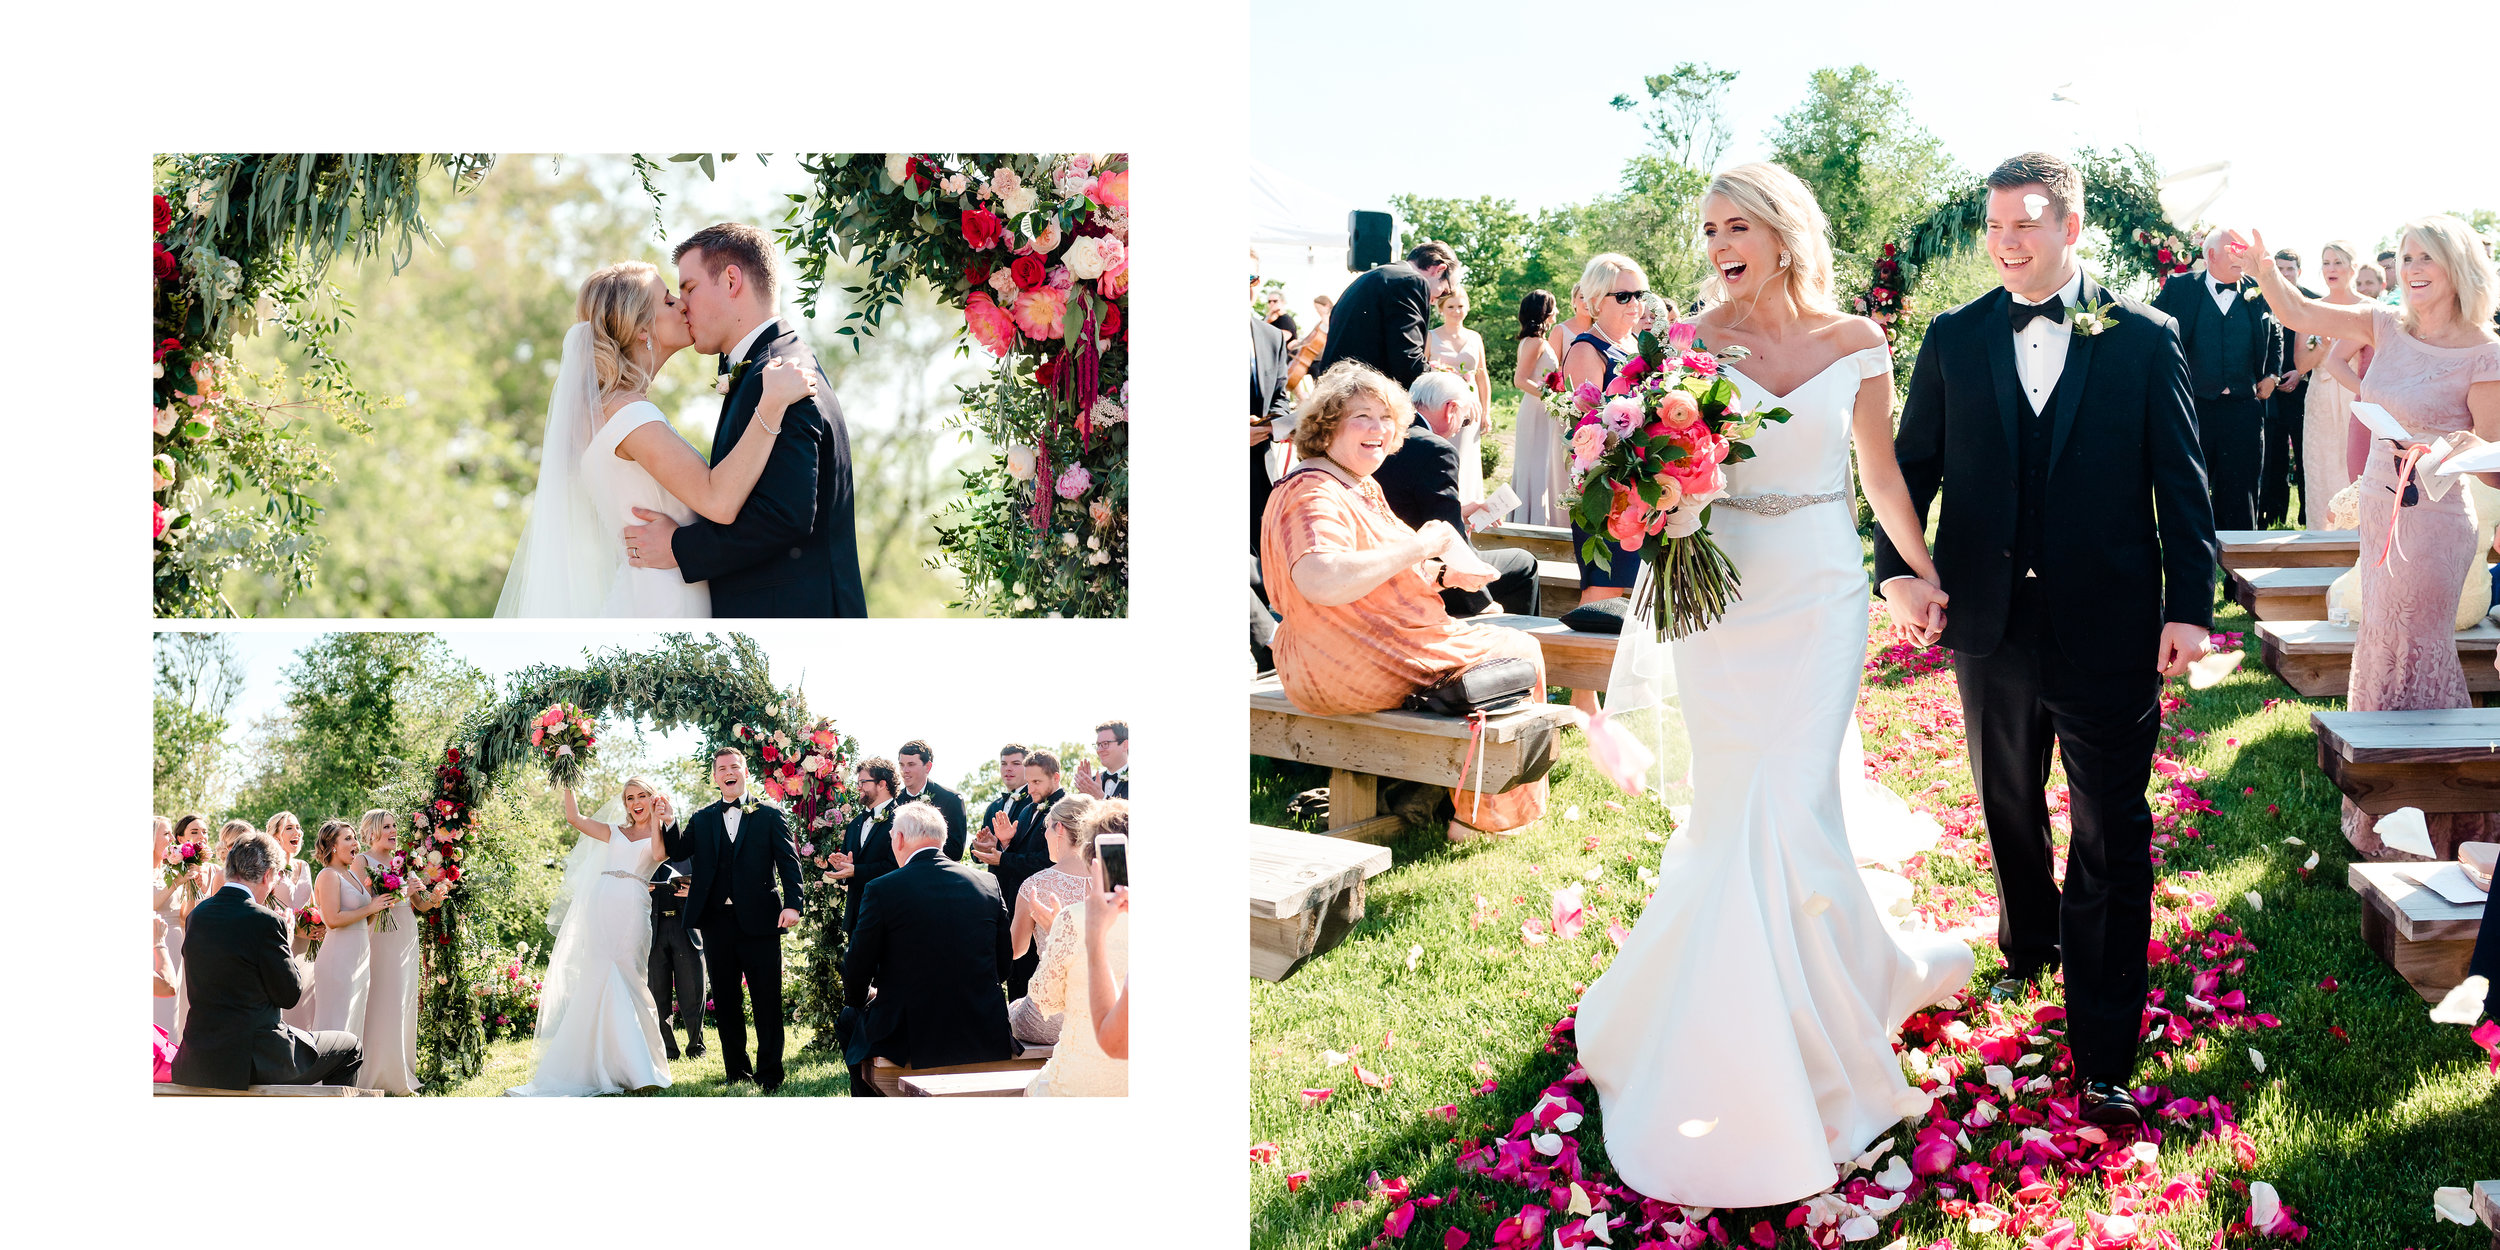 Amanda + Justin - Wedding Album_16.jpg